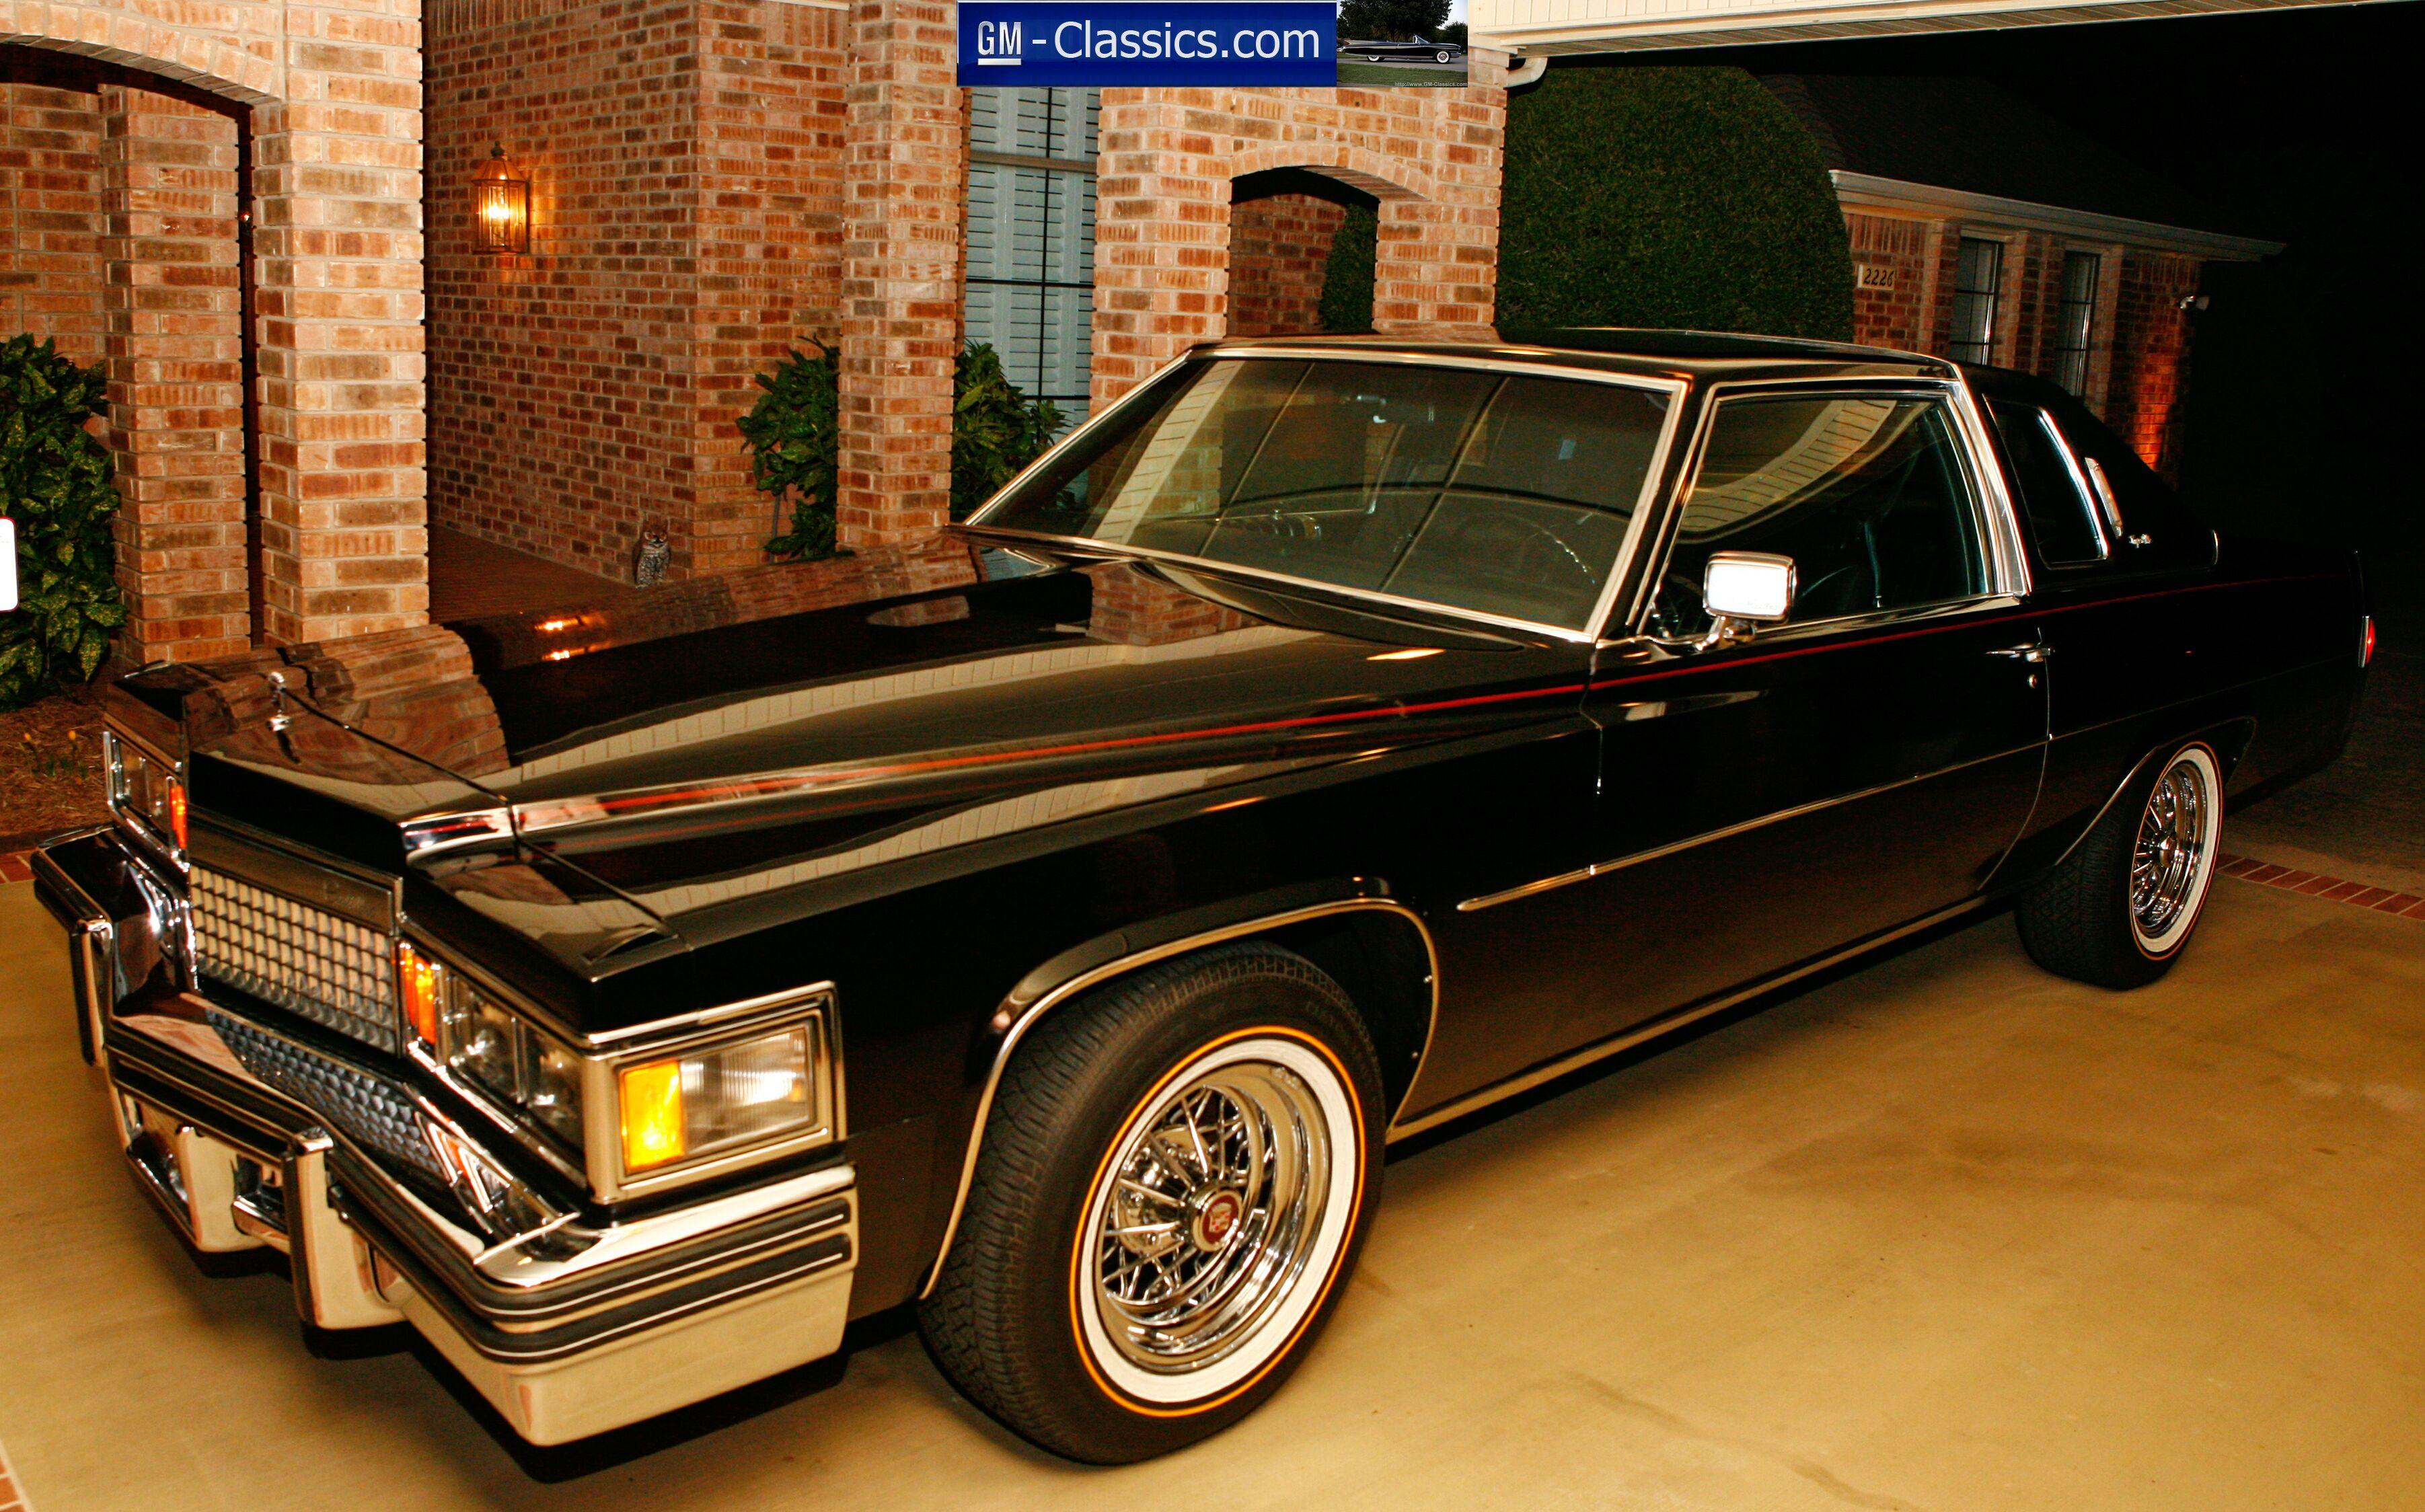 Most Fun Cars To Drive >> 1979 Cadillac Coupe Deville - Matt Garrett